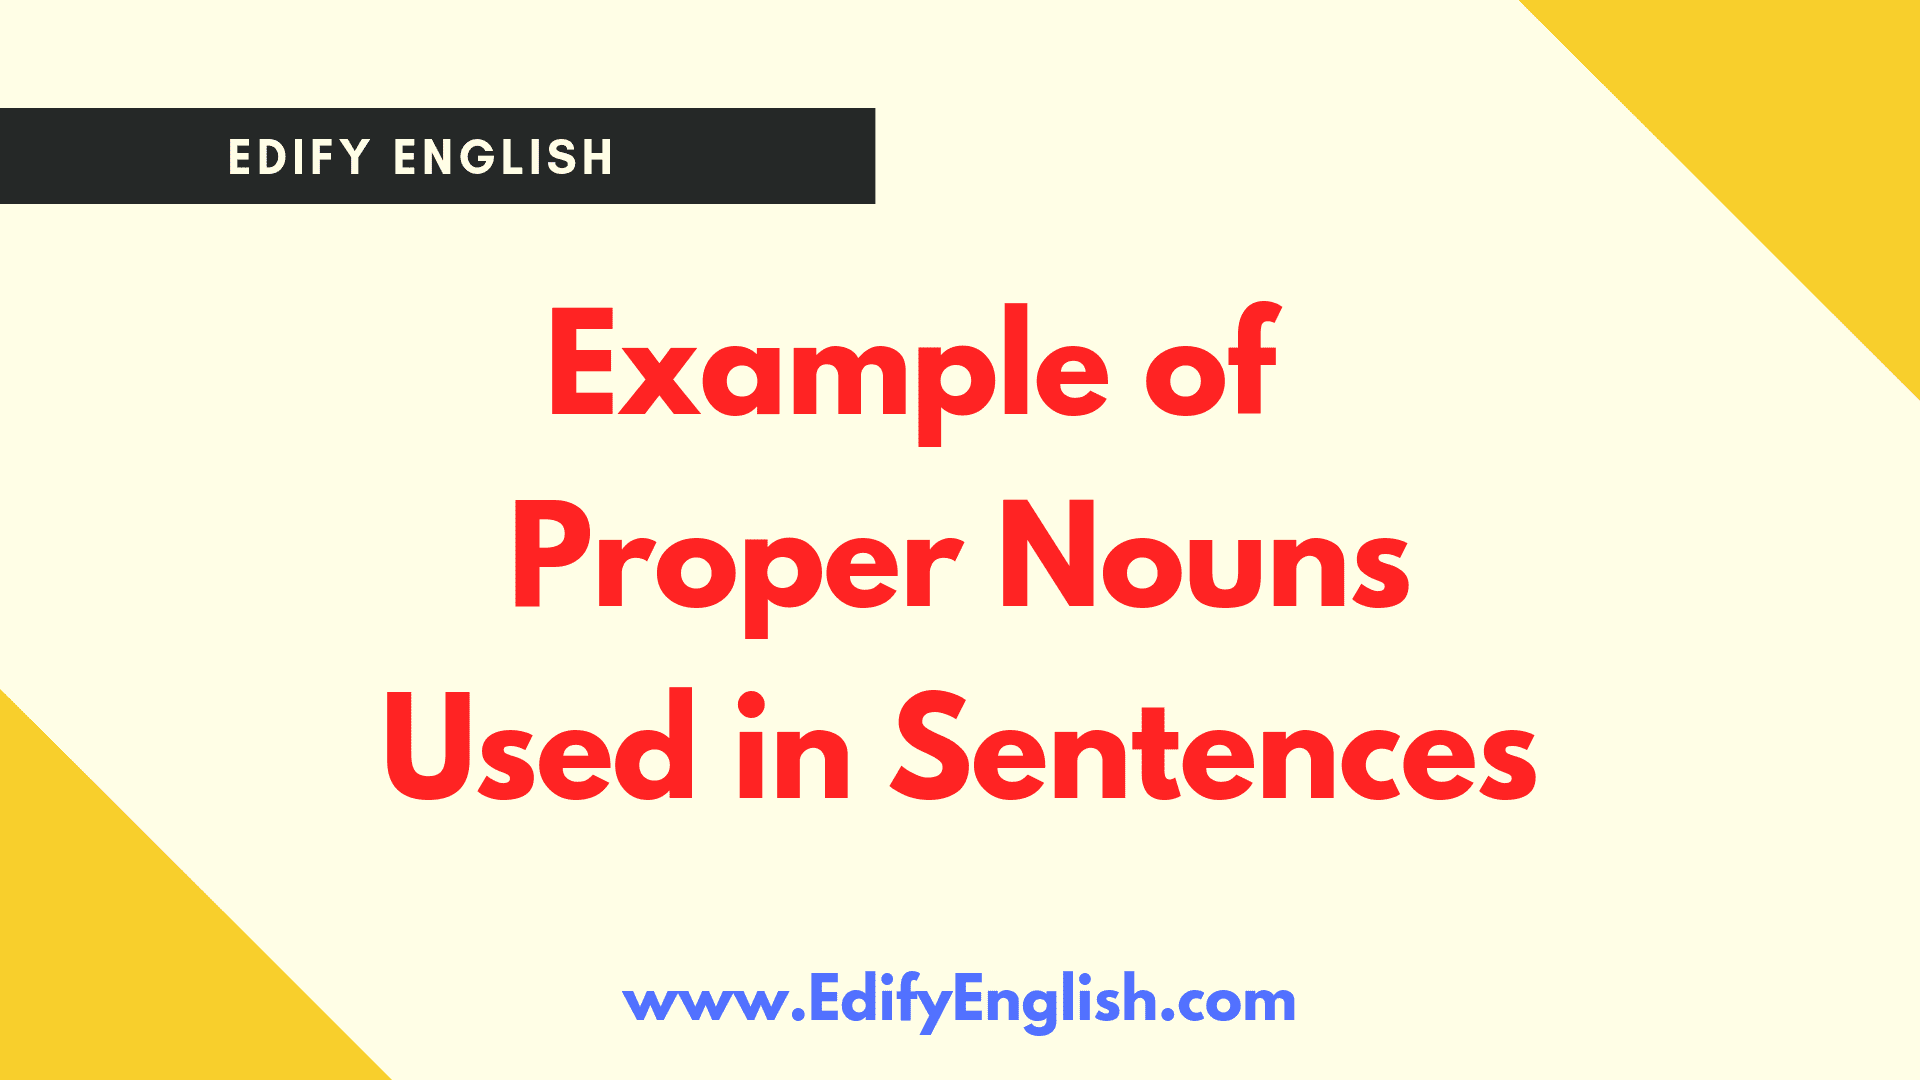 Examples of Proper Nouns used in Sentences